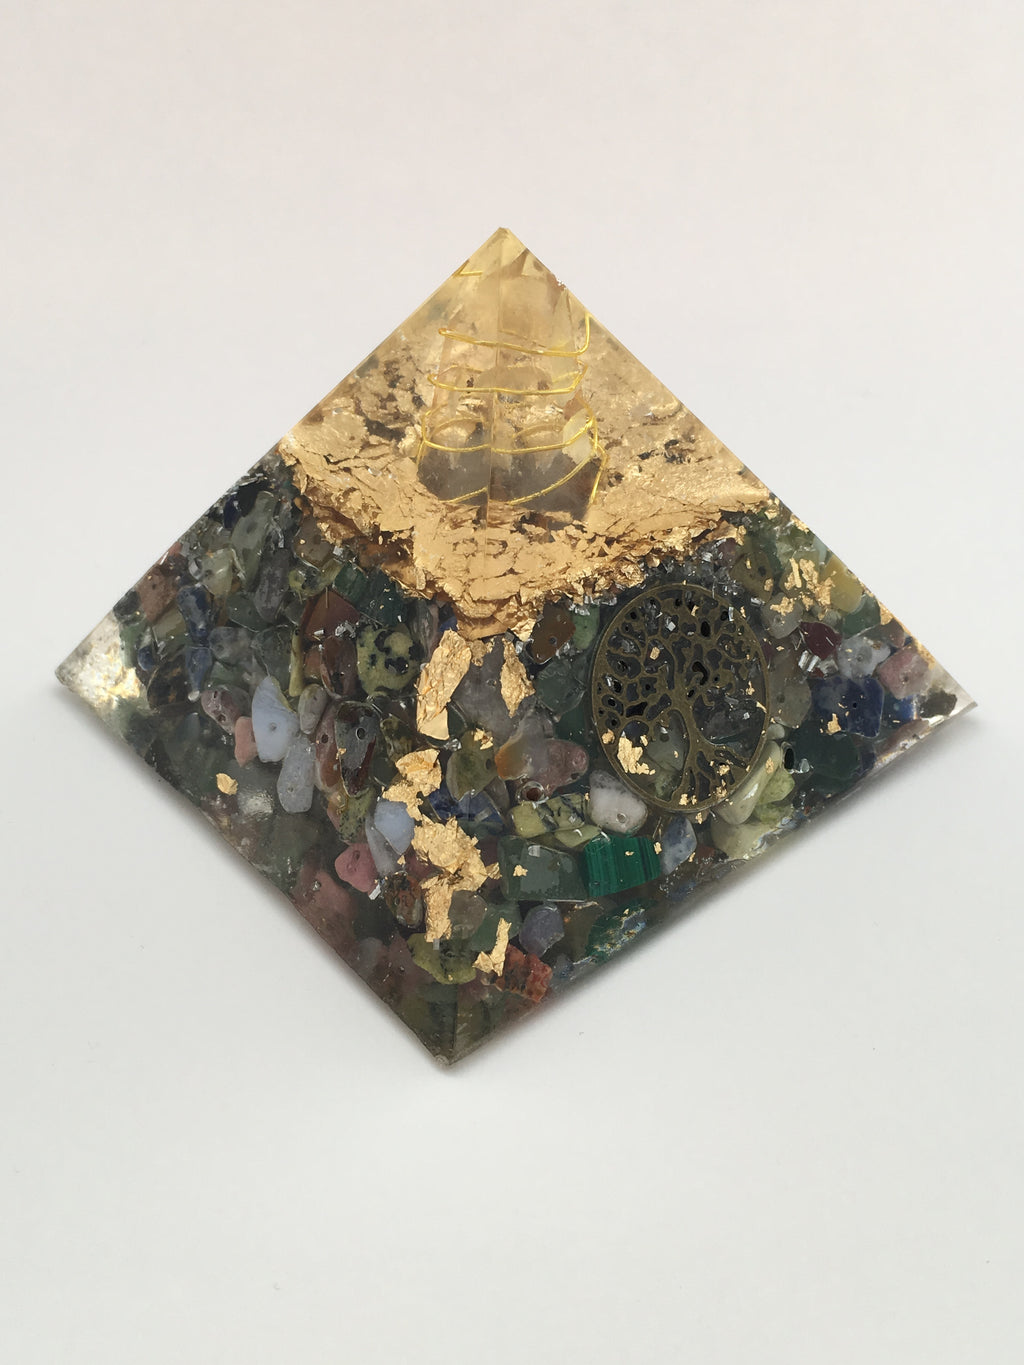 Chi Enhancing Pyramid — Large Mixed Gemstone with Bronze Tree of Life